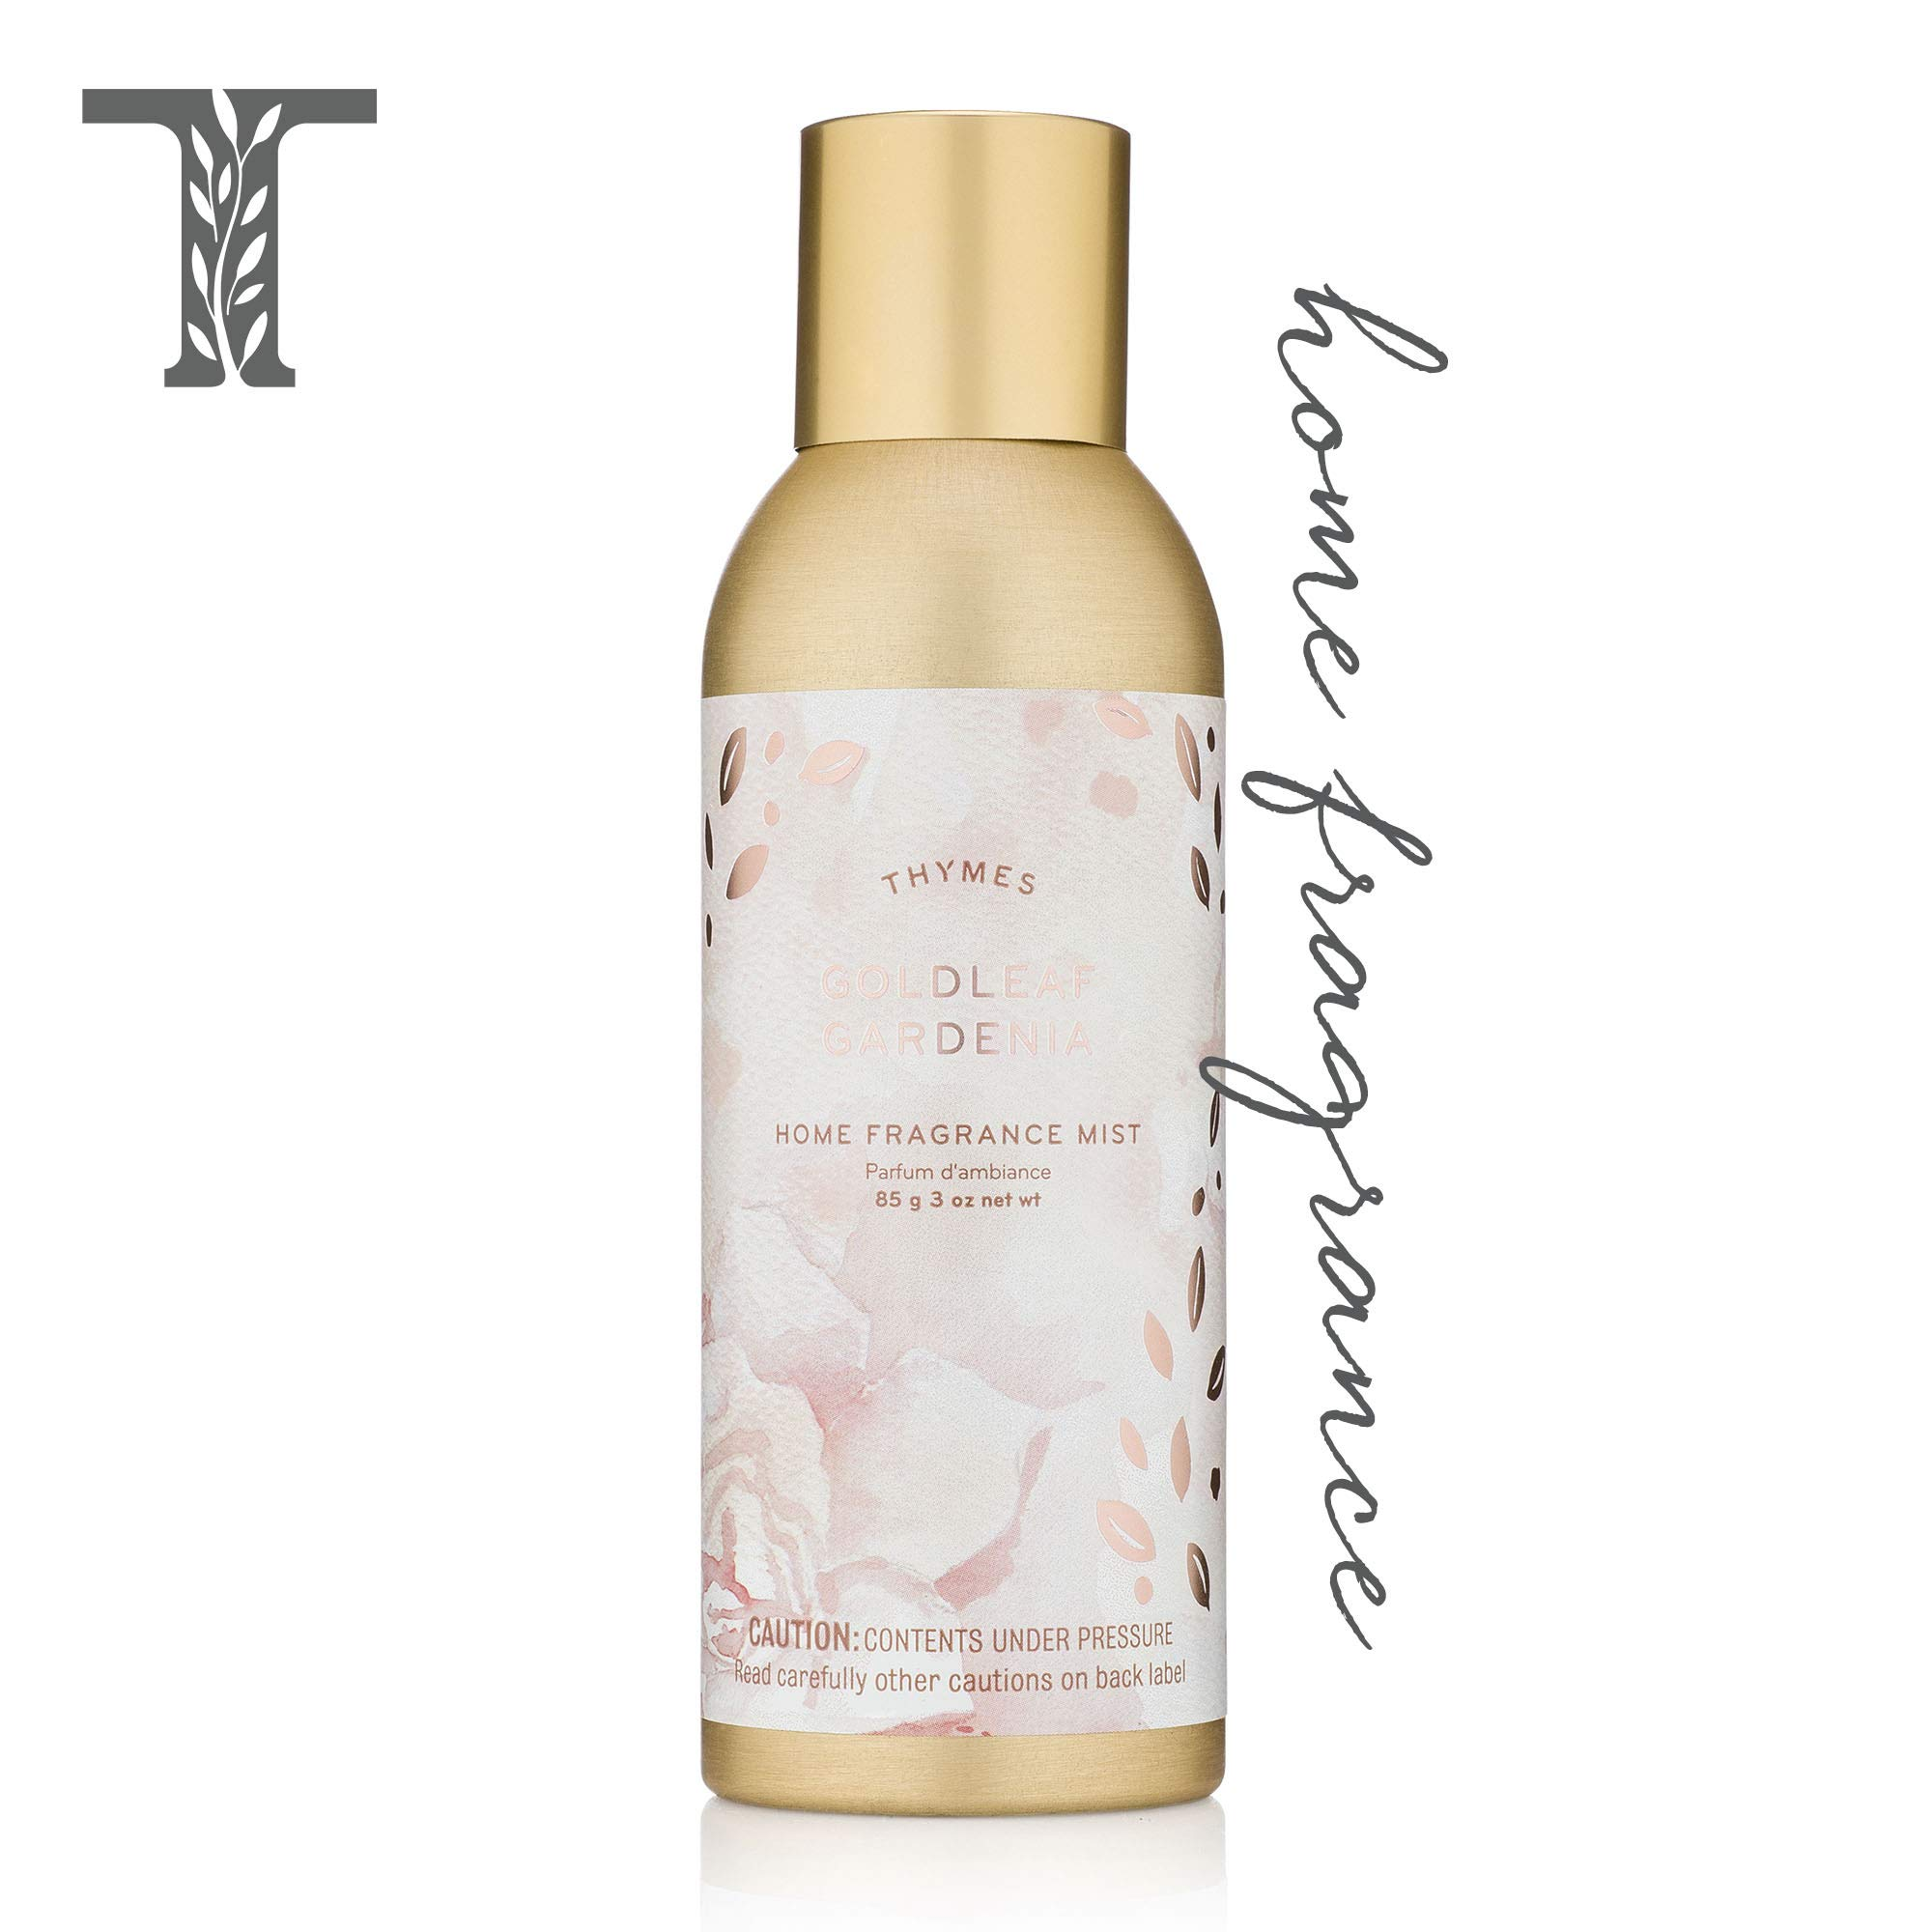 Thymes - Goldleaf Gardenia Home Fragrance Mist - Light Floral Scented Room Spray - 3 oz by Thymes